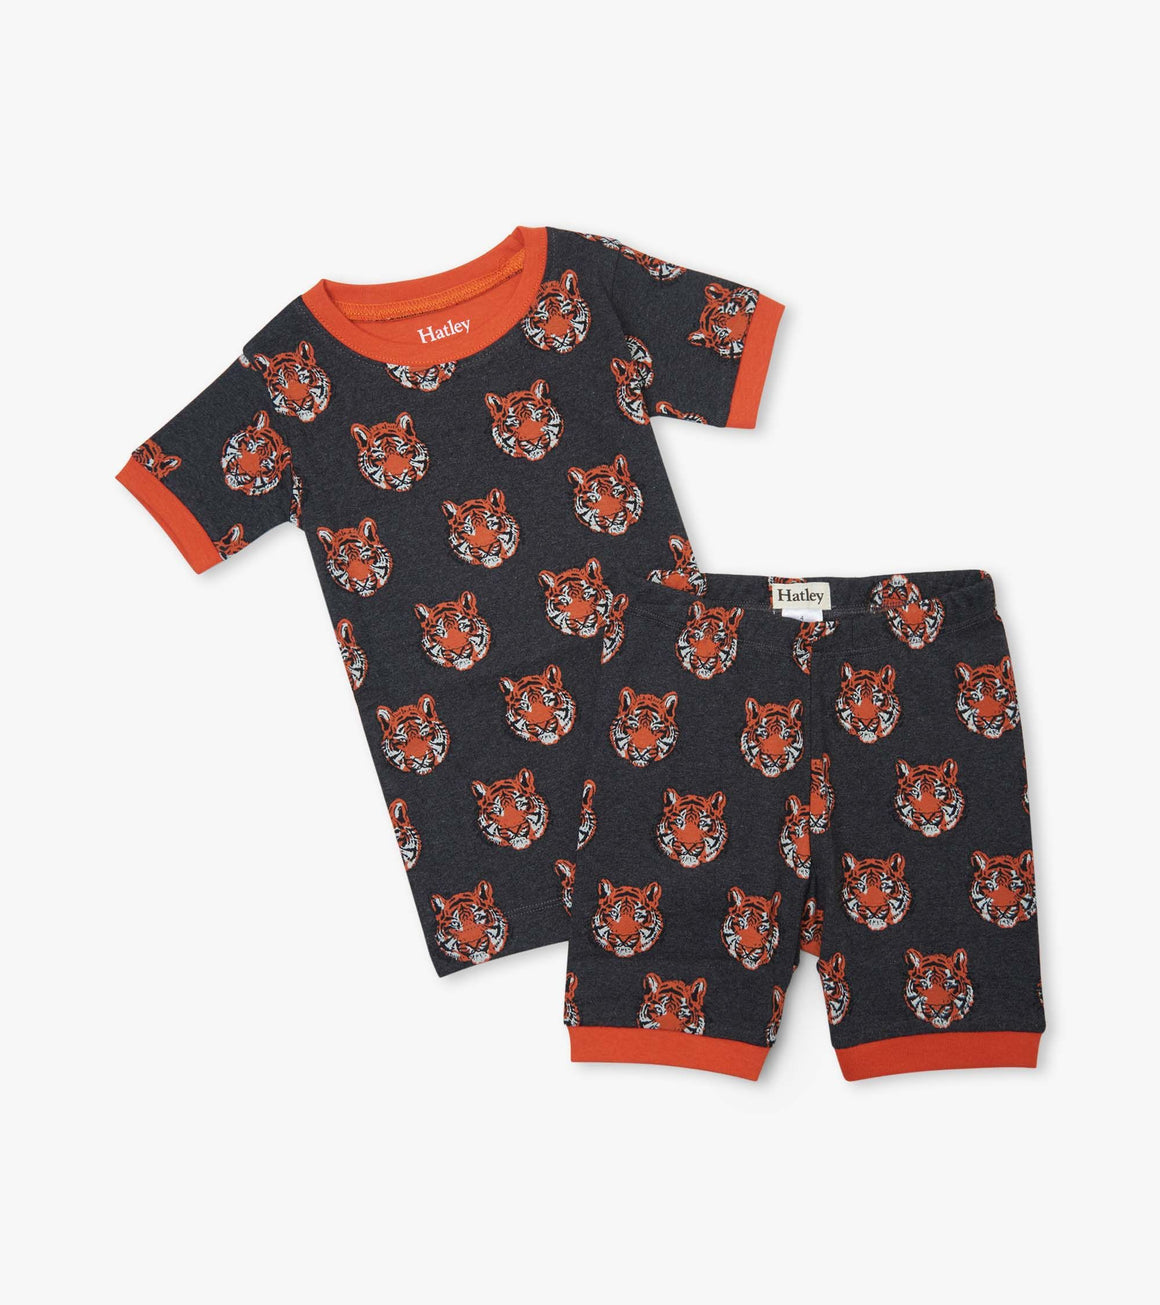 Boys short sleeve and short pajama set in 100% organic cotton. Charcoal grey background with fierce orange tigers print.